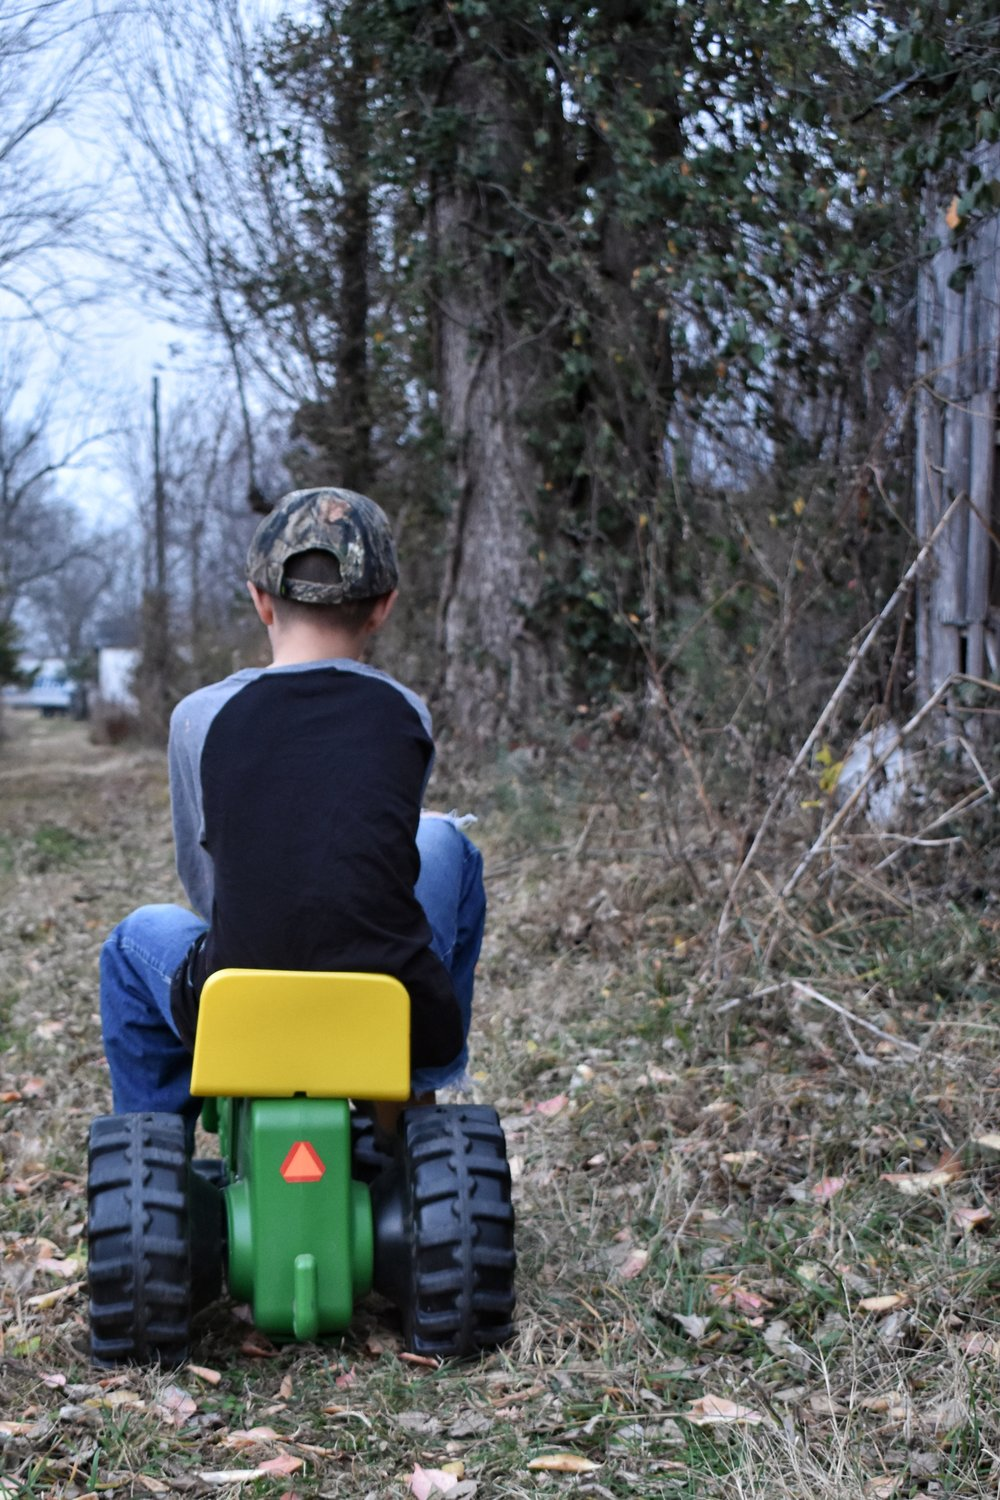 John Deere Holiday Gift Guide for a boy